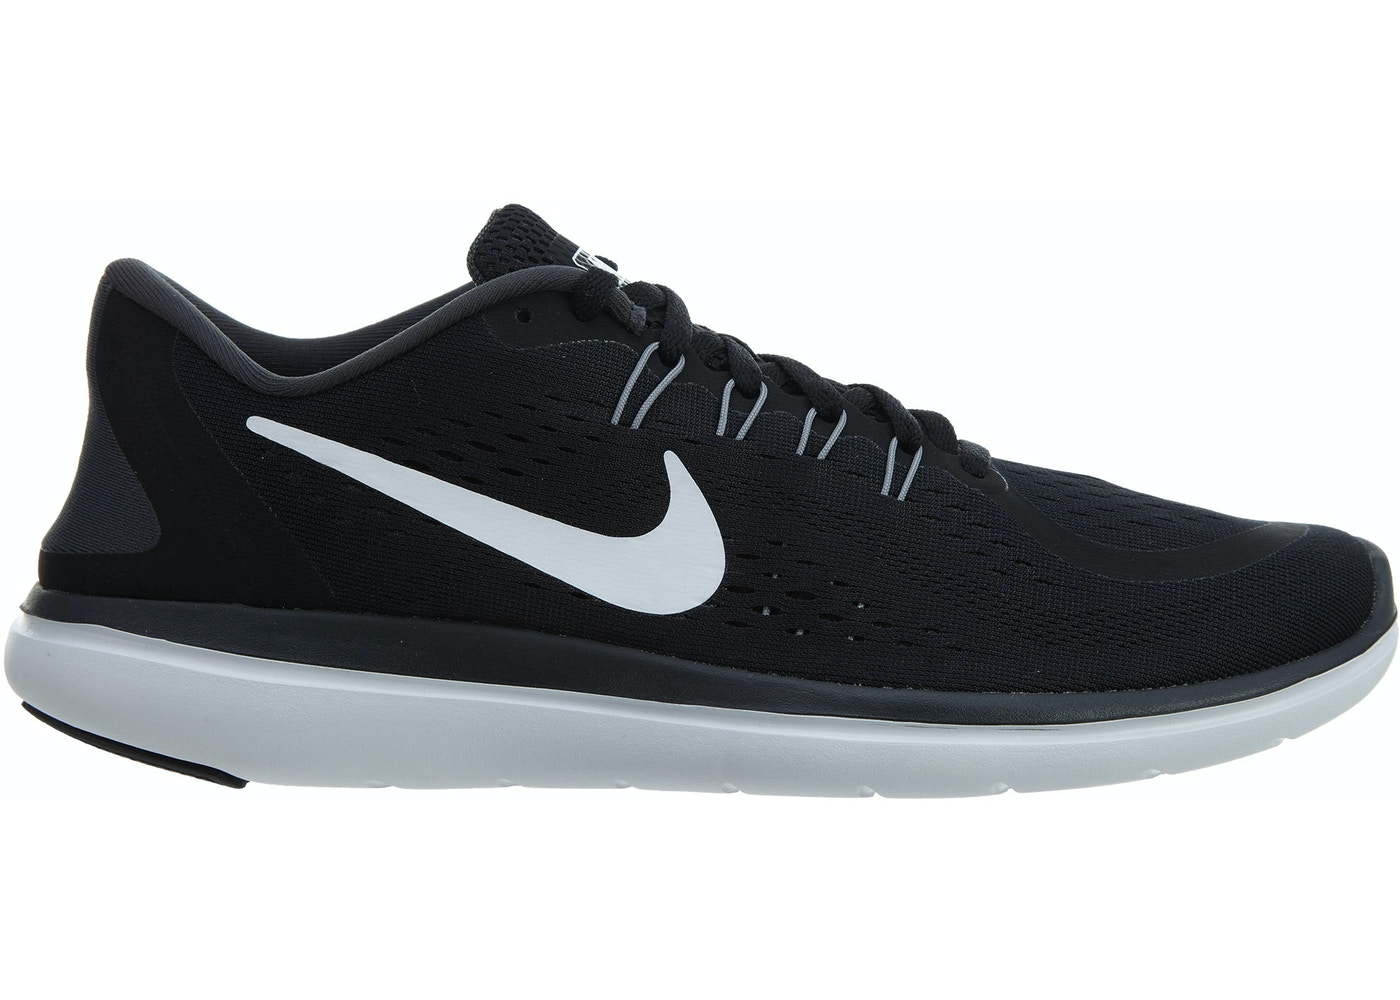 new style c299e f3cfc Sell. or Ask. Size --. View All Bids. Nike Flex 2017 Rn ...